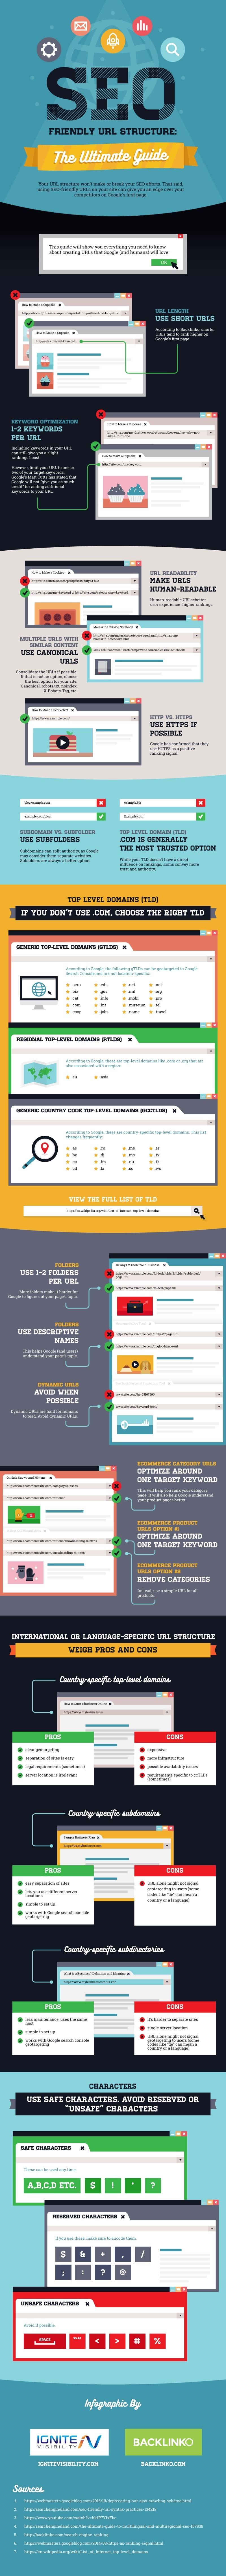 SEO URL-Structure infographic